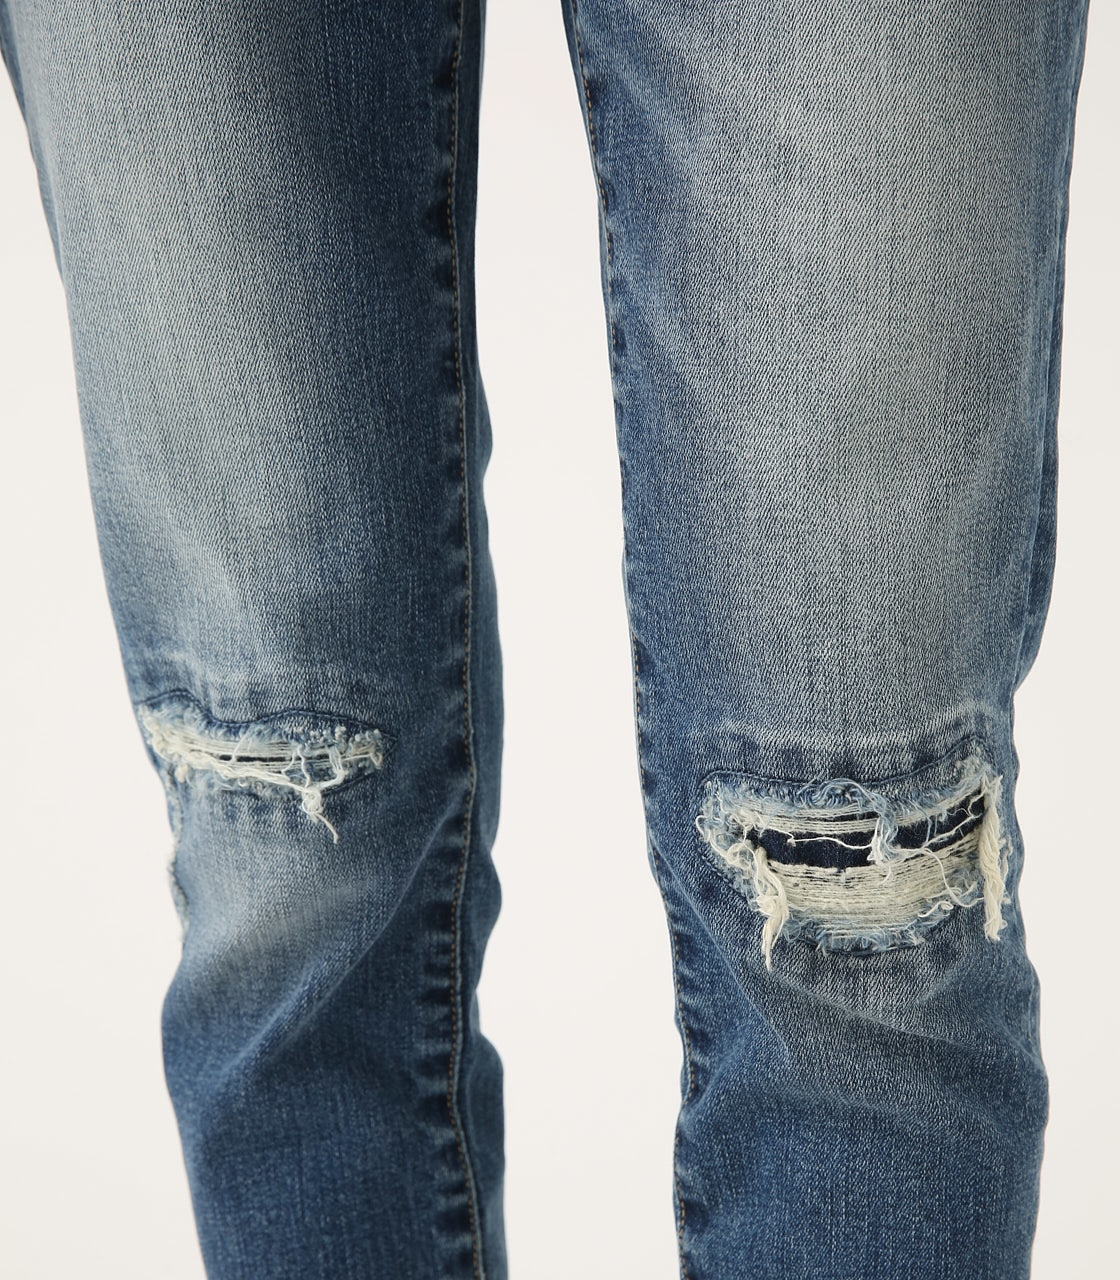 【AZUL BY MOUSSY】REPAIR DENIM SKINNY 詳細画像 BLU 9